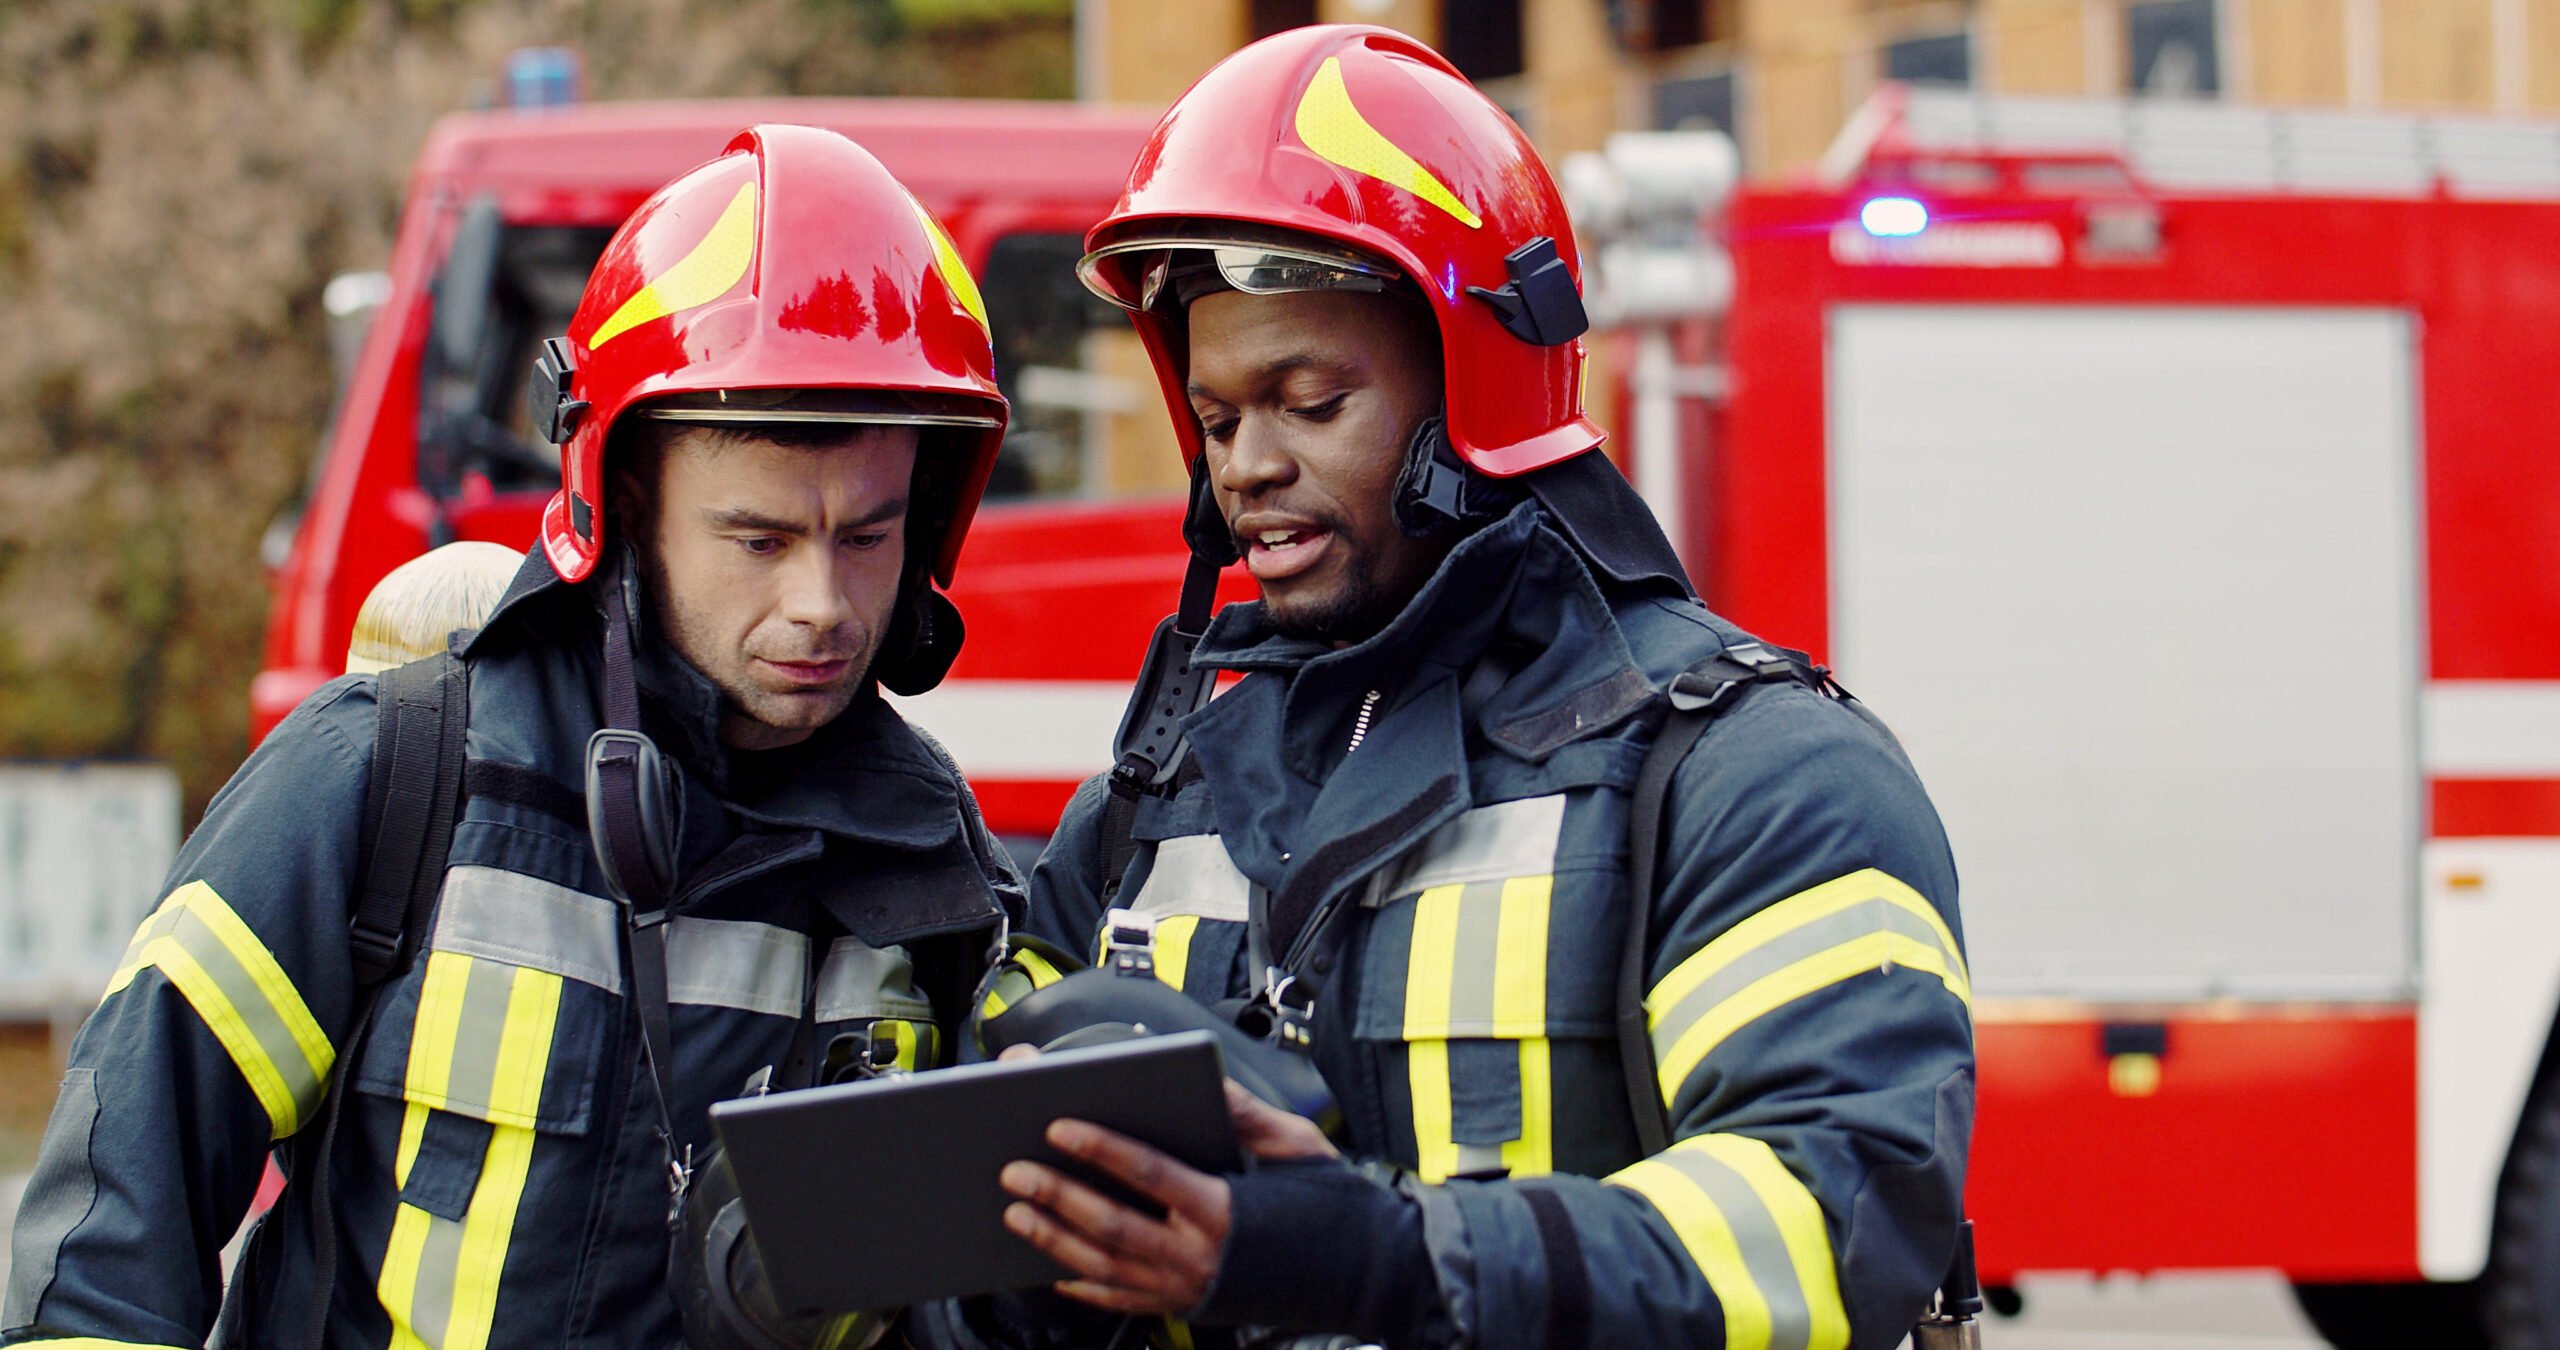 Firefighters planning their jobs